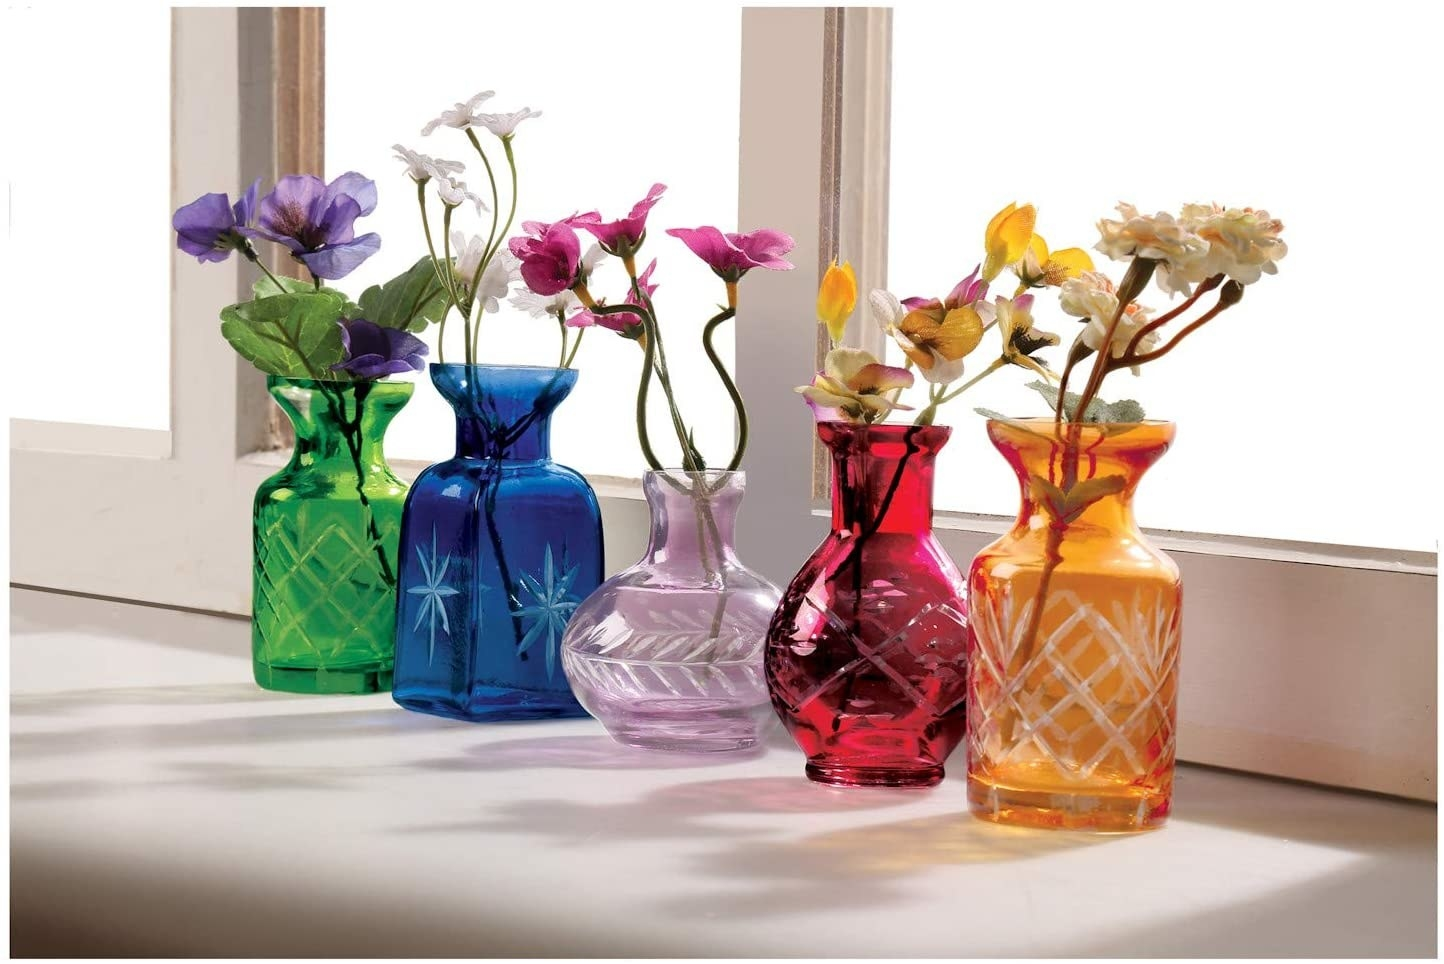 Five small glass vases in different sizes with etching on the bases in green, blue, purples, red, and orange